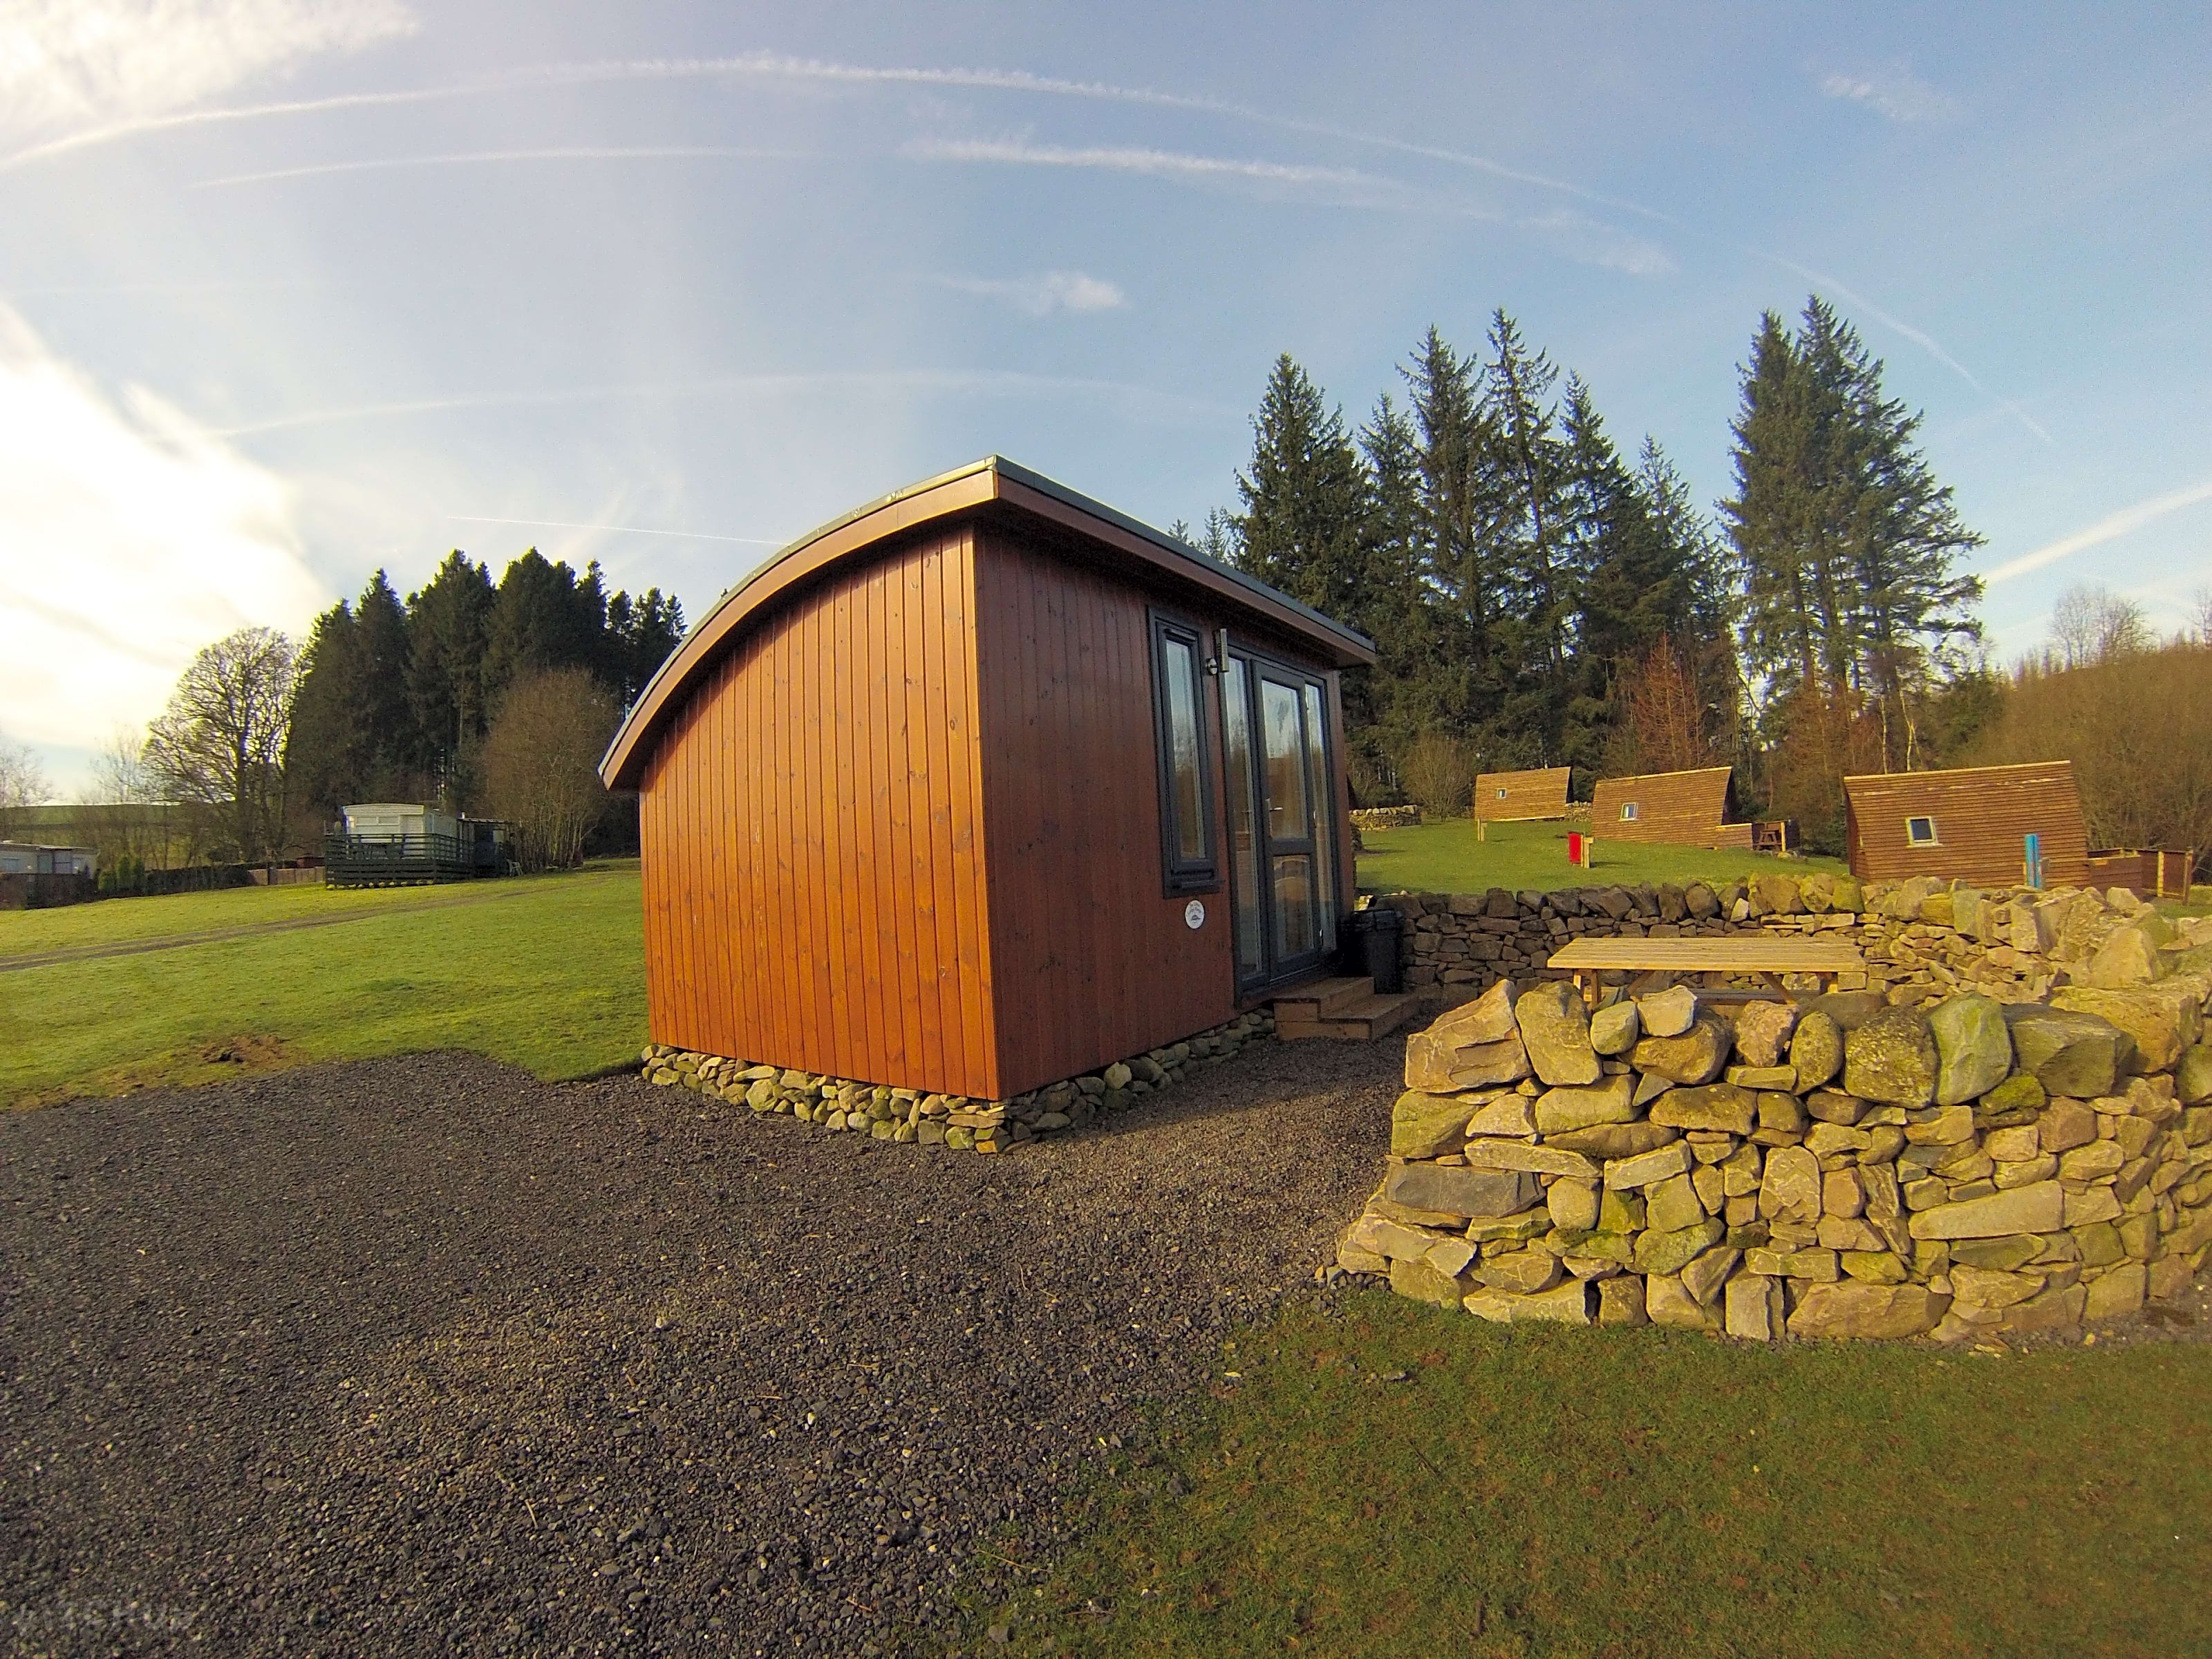 Barnsoul caravan park dumfries pitchup - Swimming pools in dumfries and galloway ...